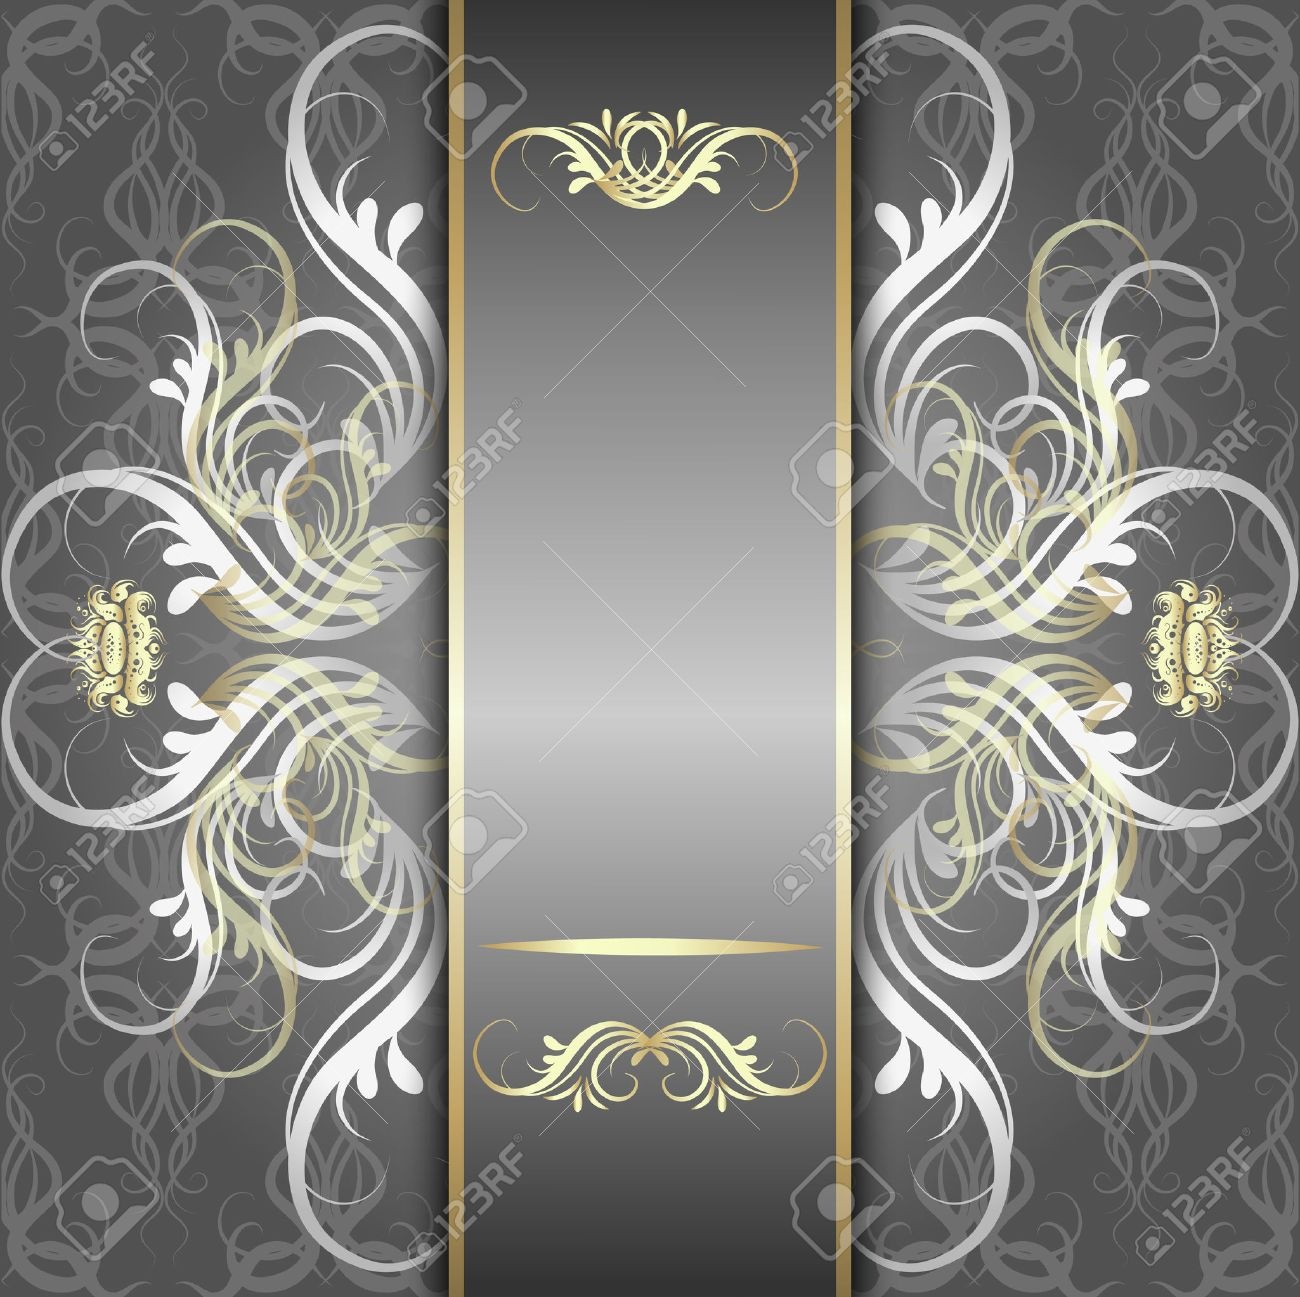 Vintage, elegant background, antique, victorian silver, floral ornament, baroque frame, beautiful invitation, classical old style card, ornate page cover, royal luxury, ornamental pattern template - 31412614